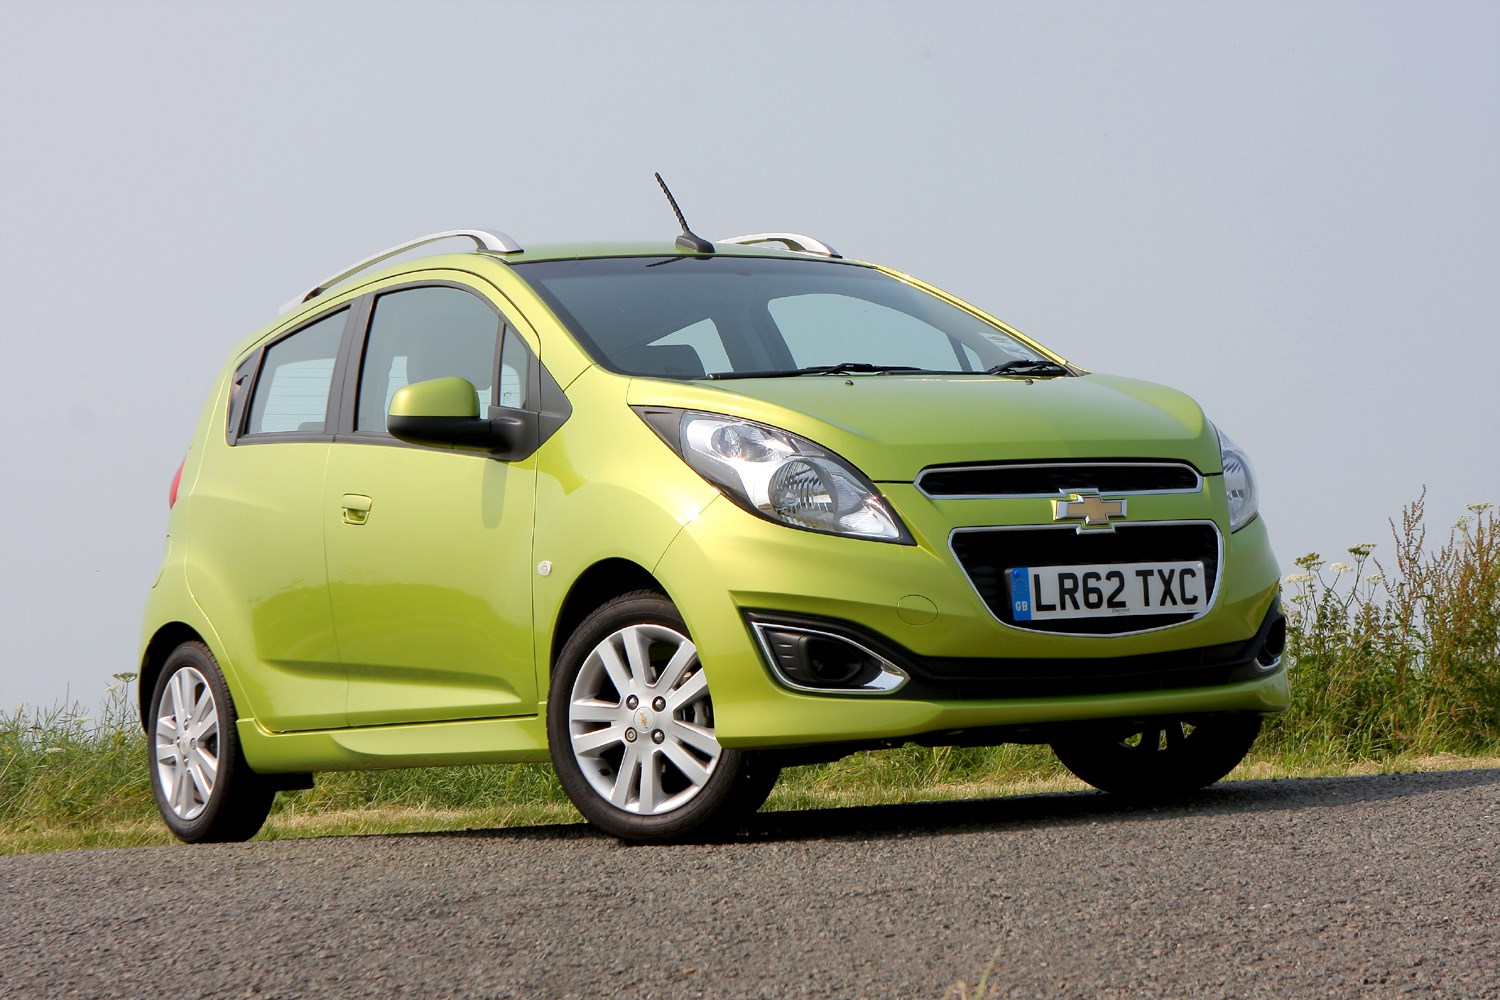 Used Chevy Spark >> Chevrolet Spark Hatchback Review (2010 - 2015) | Parkers